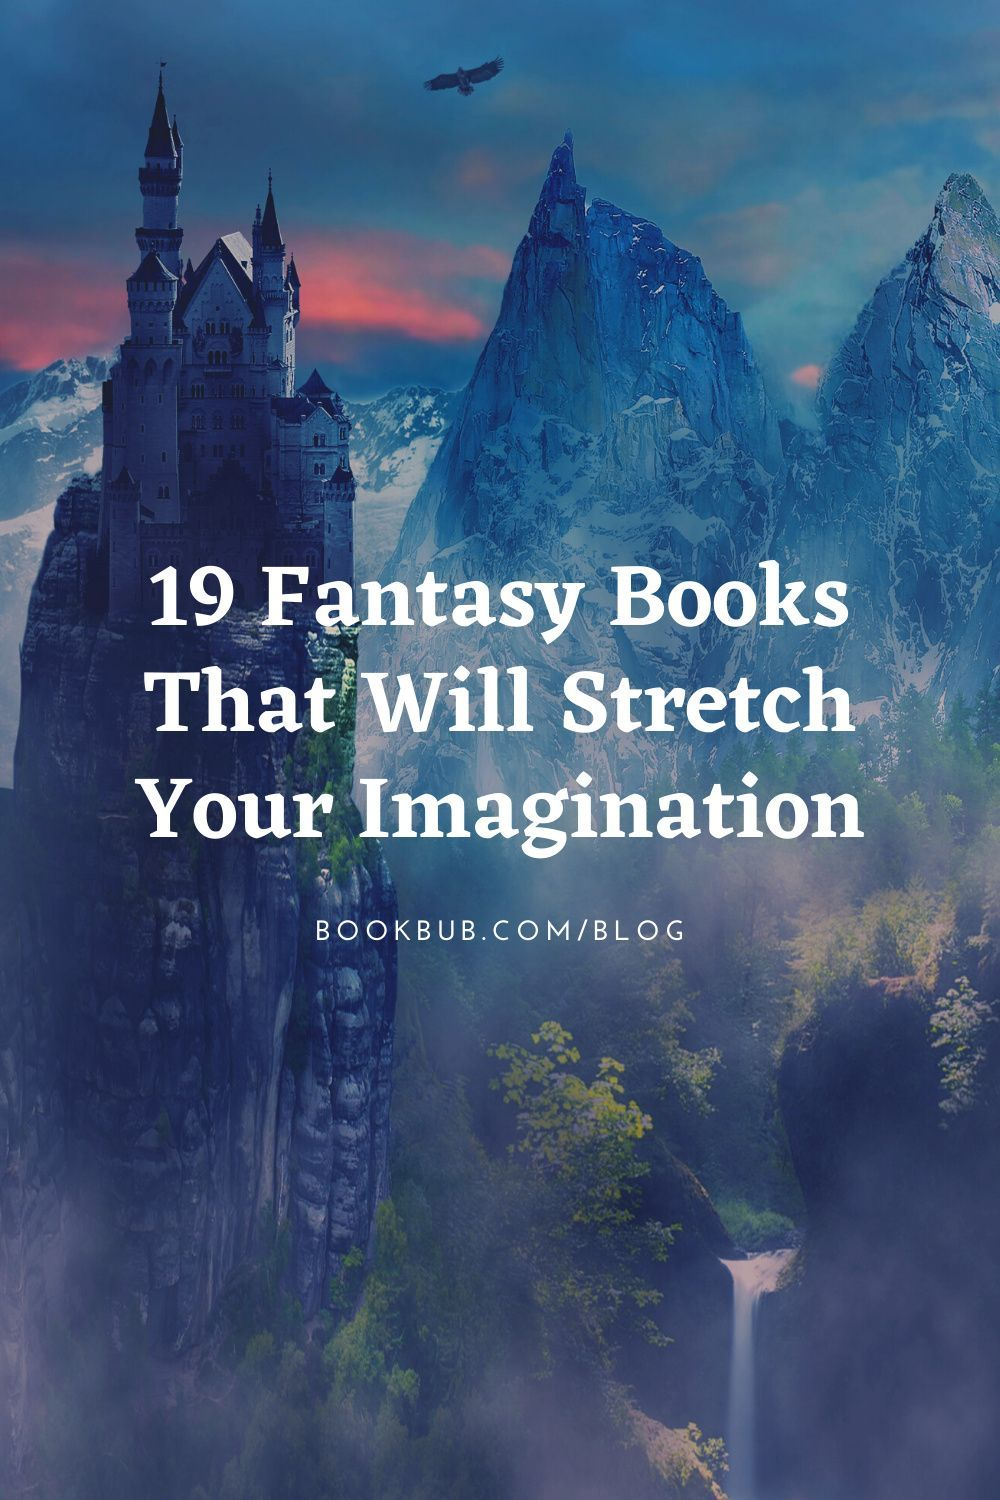 19 of the Best Science Fiction and Fantasy Books Coming